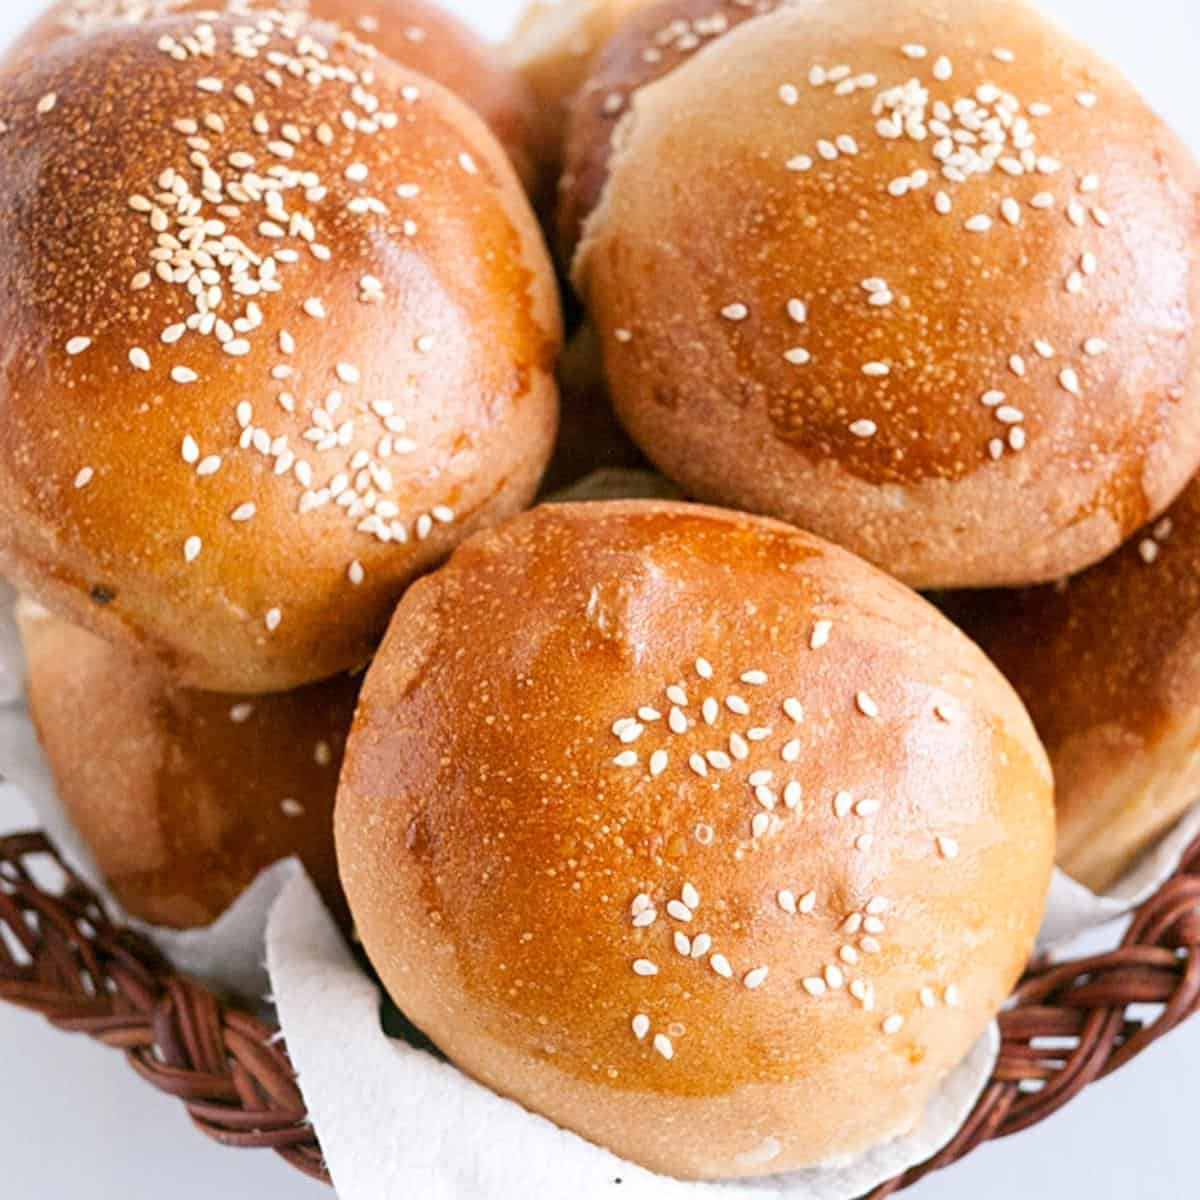 A basket with whole wheat buns.